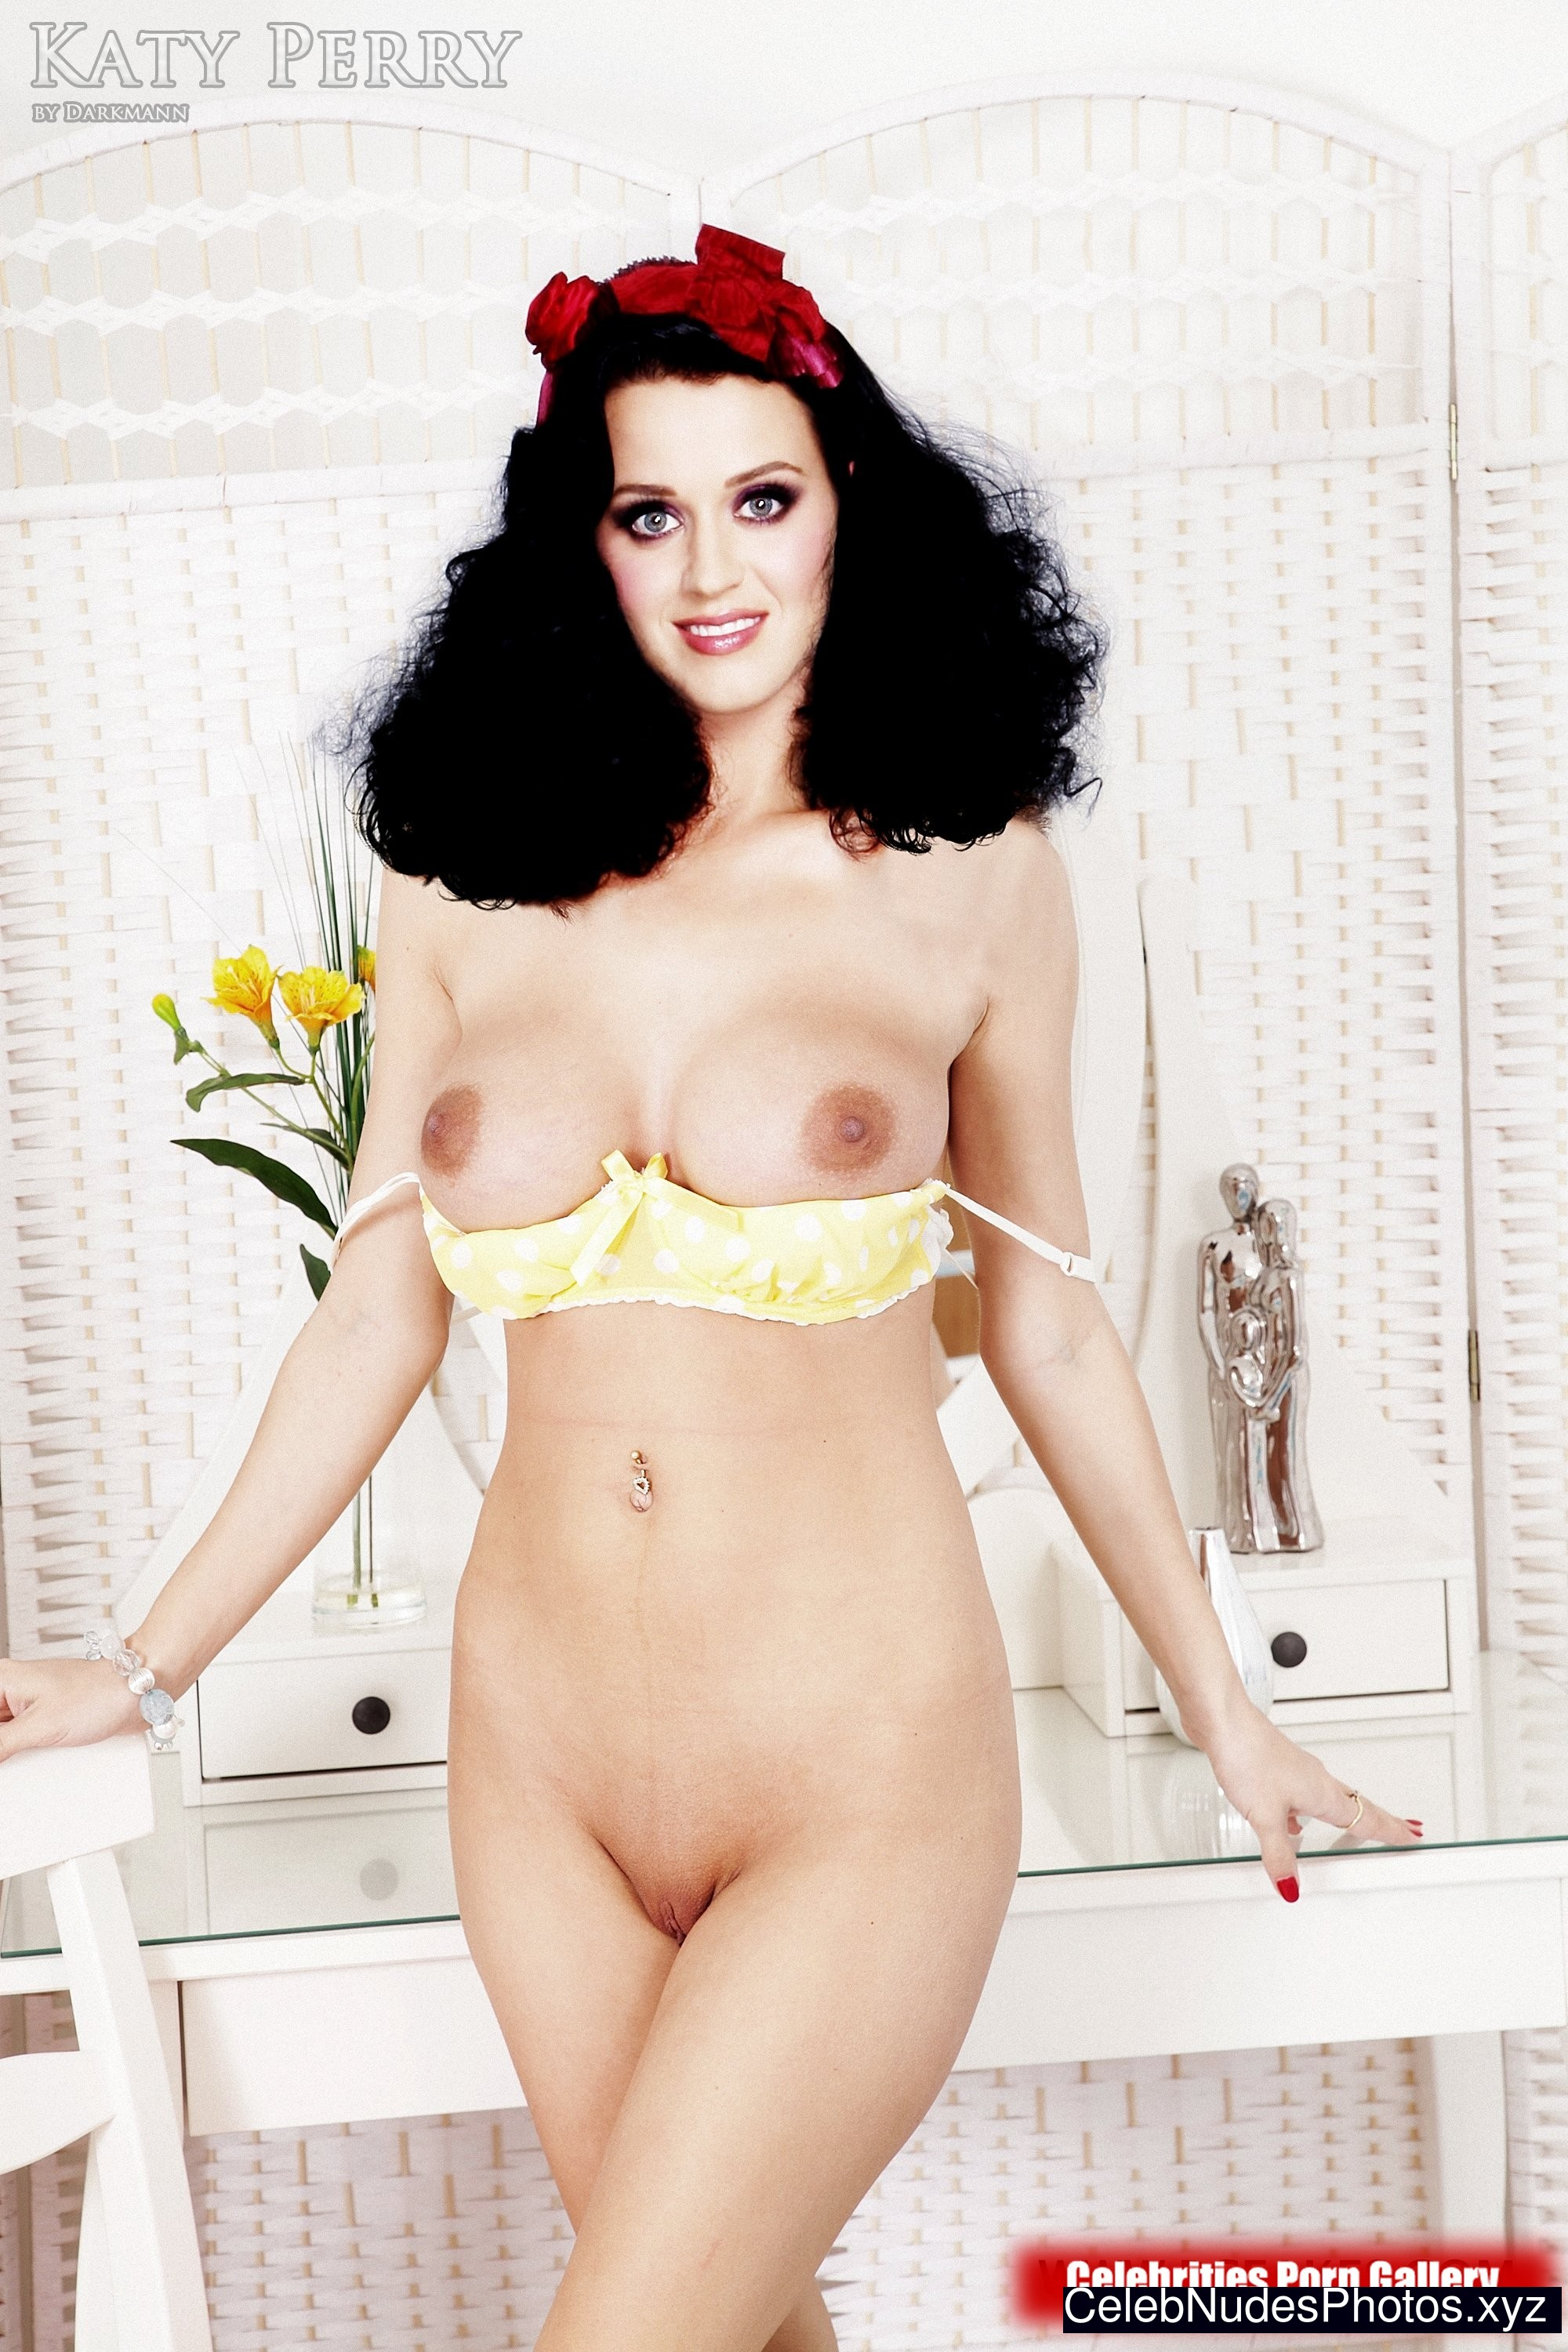 Katy Perry Ever Been Nude